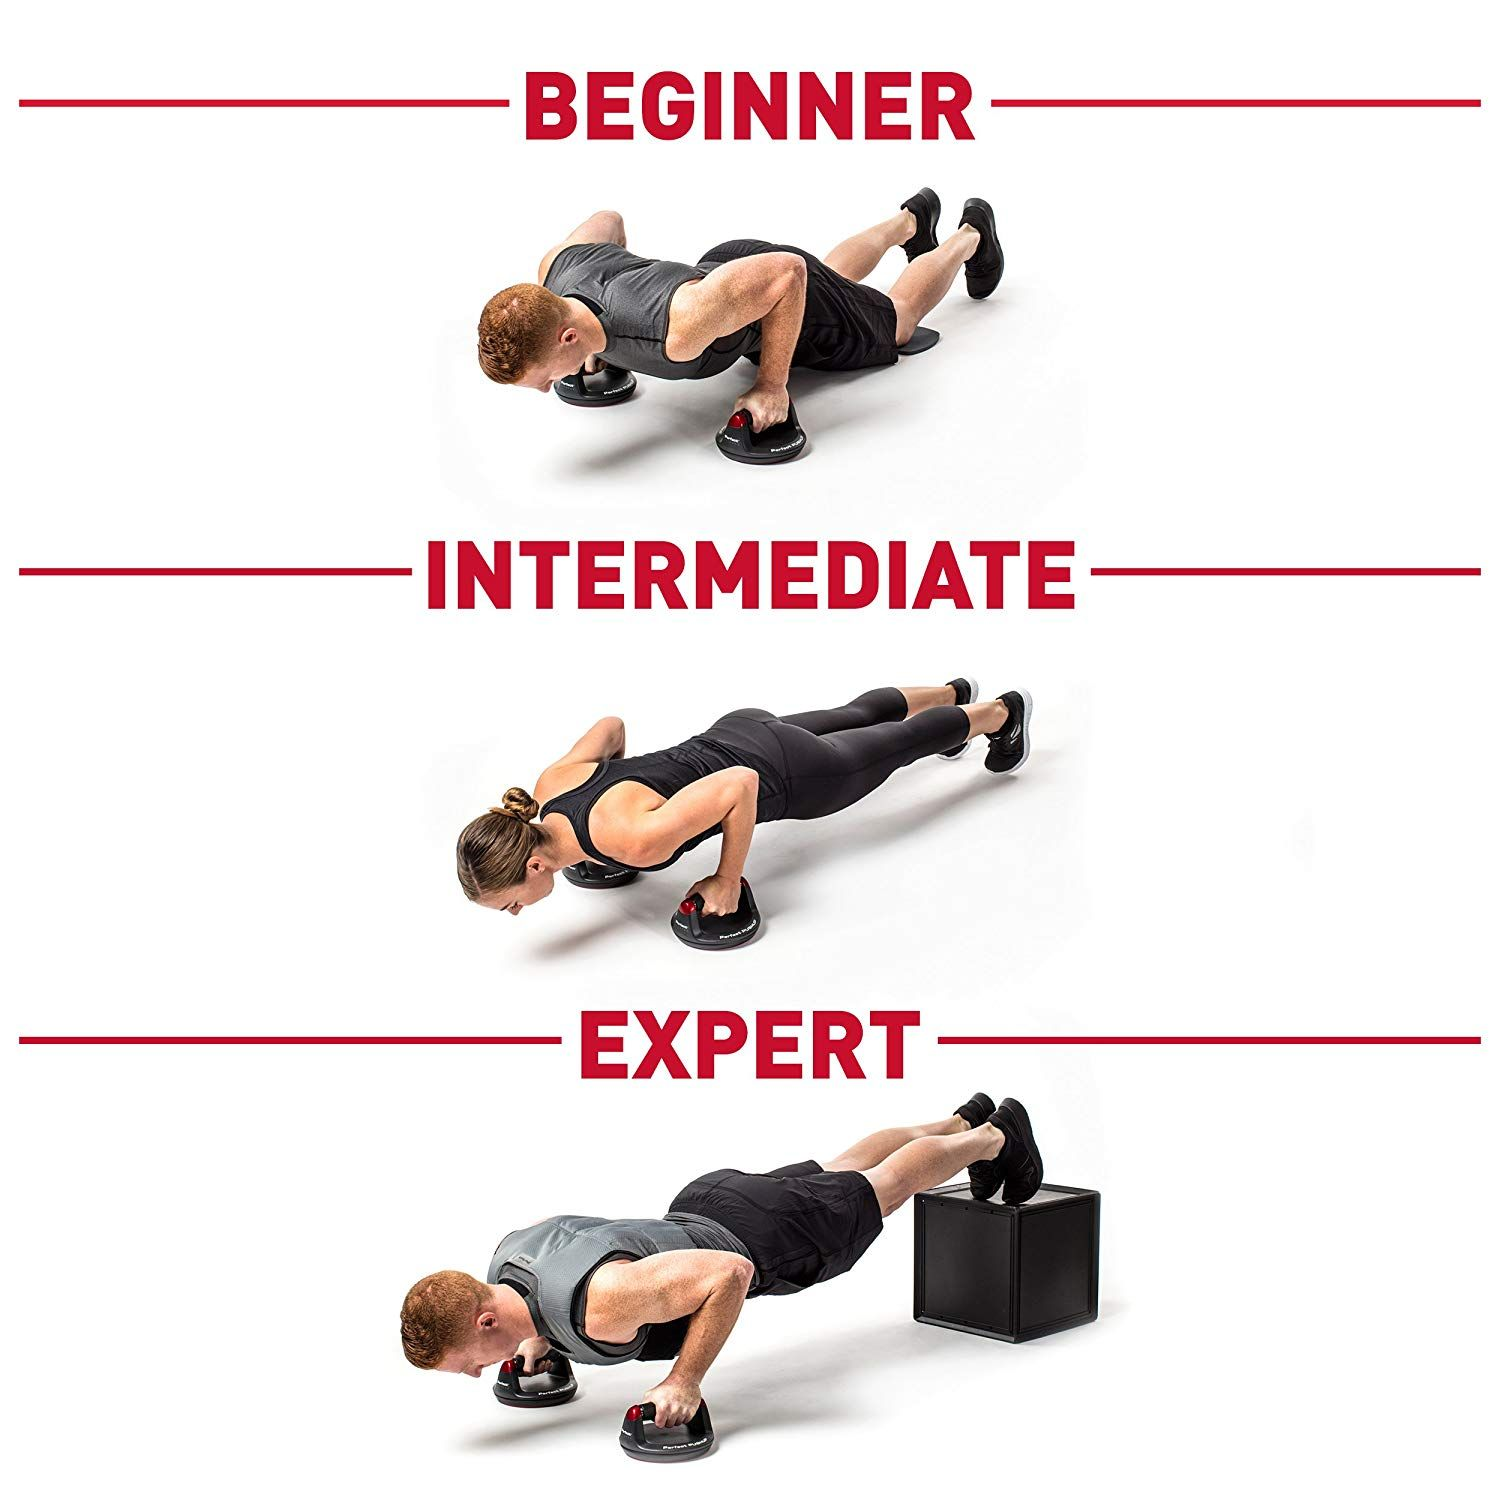 Pushup Stand Designed To Rotate Slightly Engaging More Muscles And Increasing Strength And Definition In Arms Shoulders Perfect Pushup Push Up Push Workout